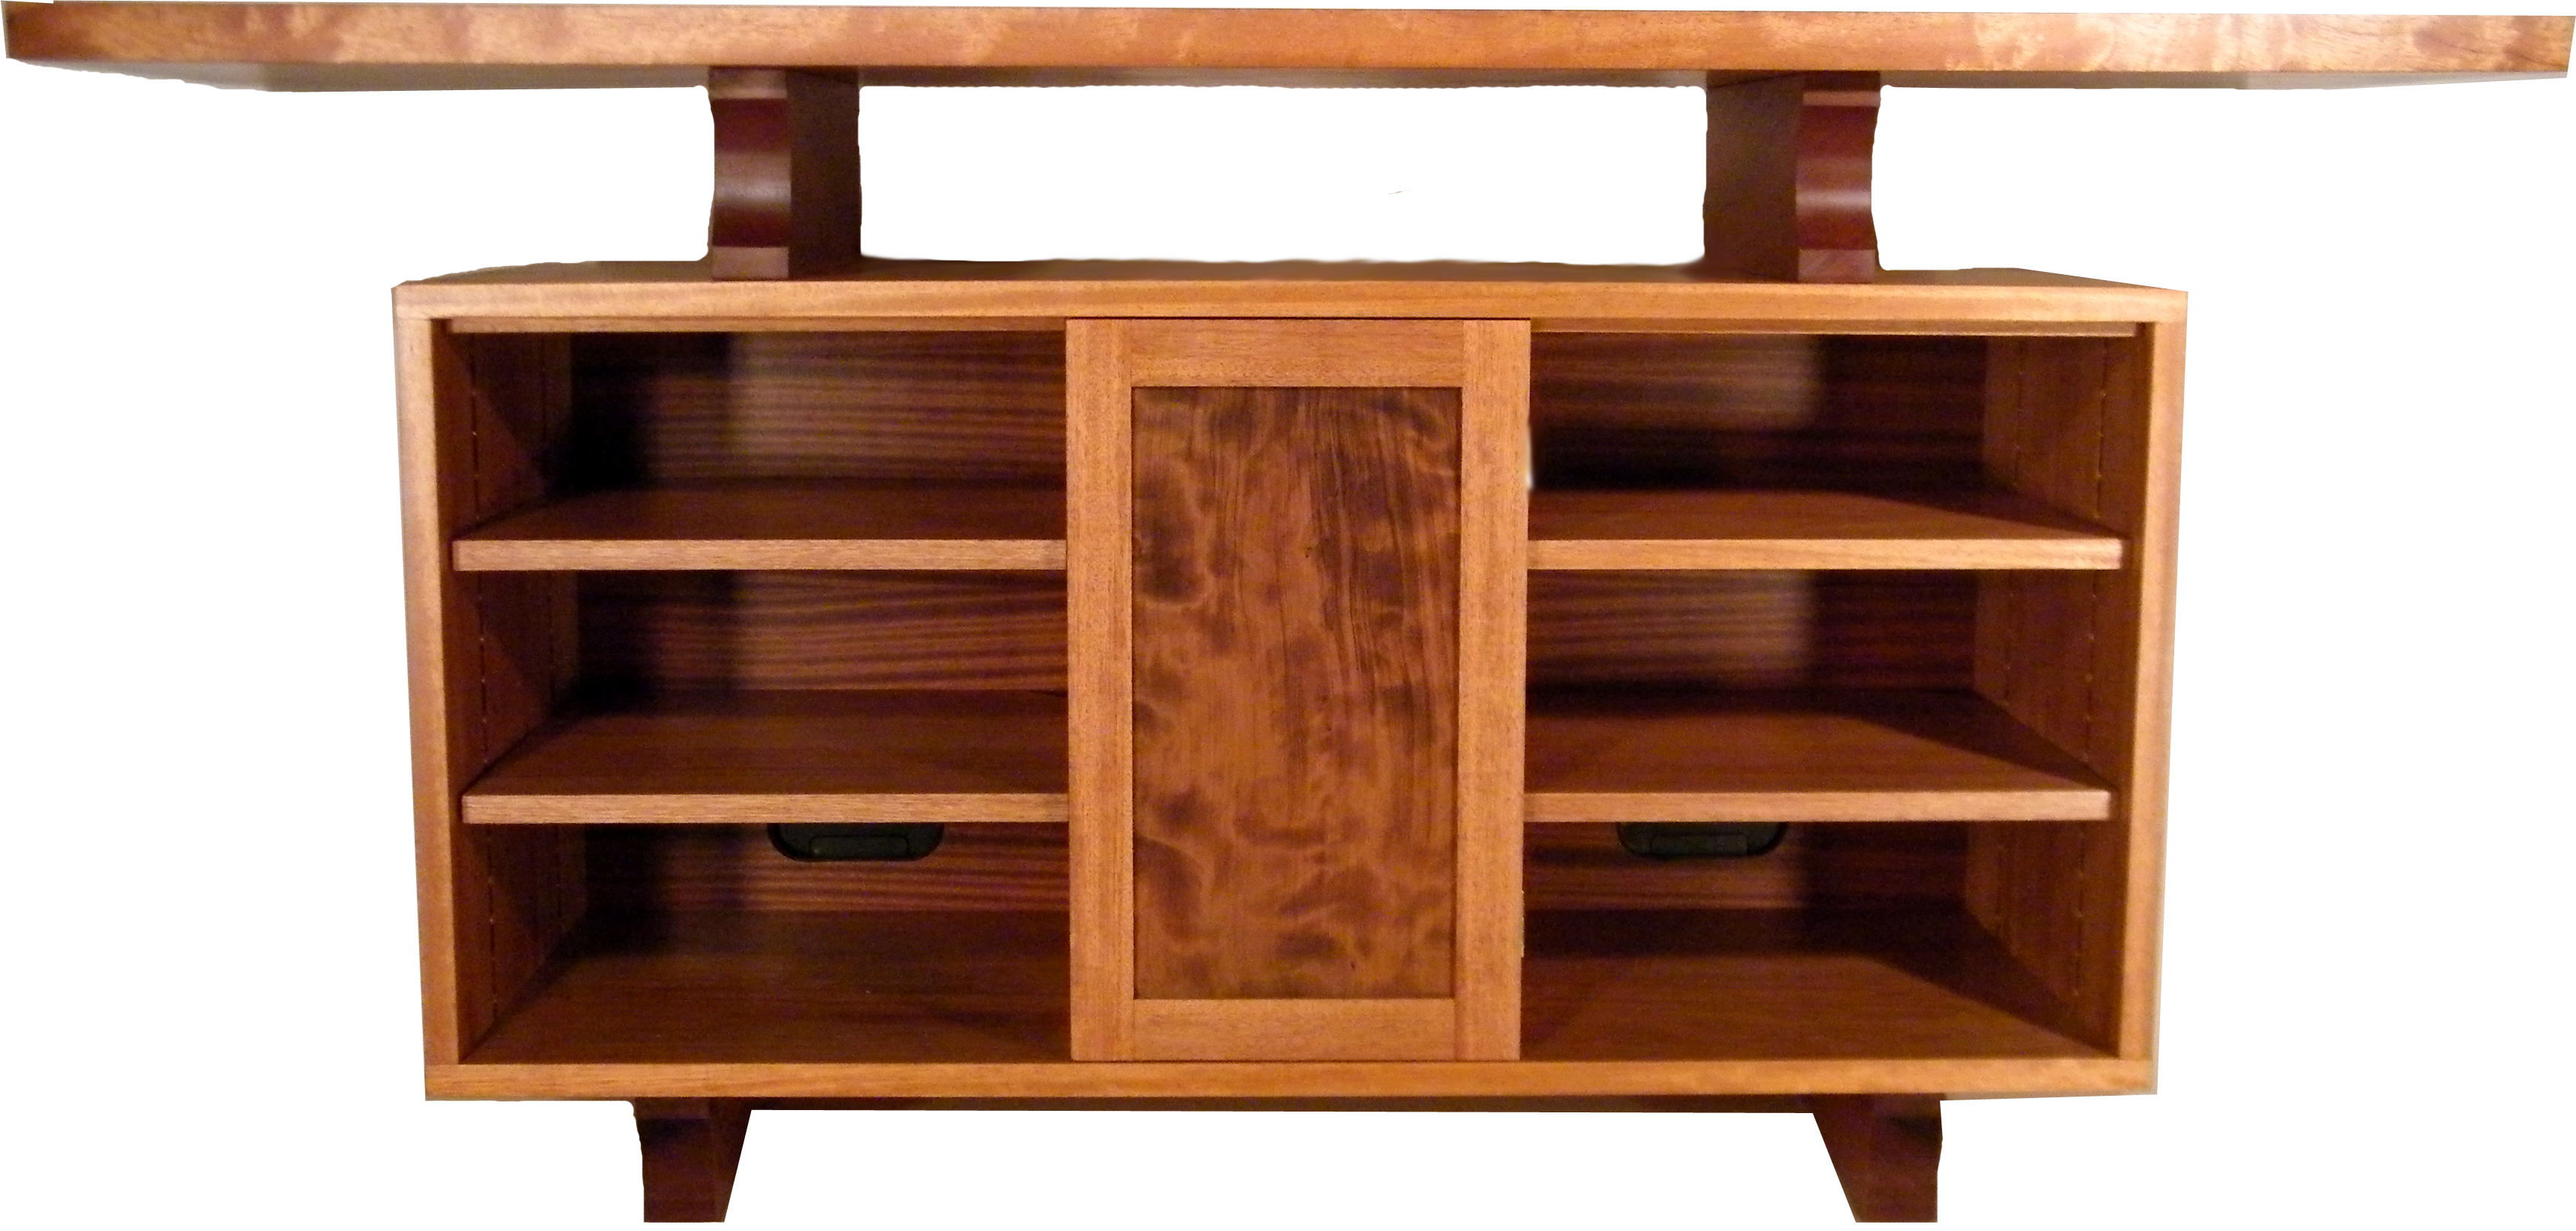 Custom wood furniture at the galleria Wooden furniture pics